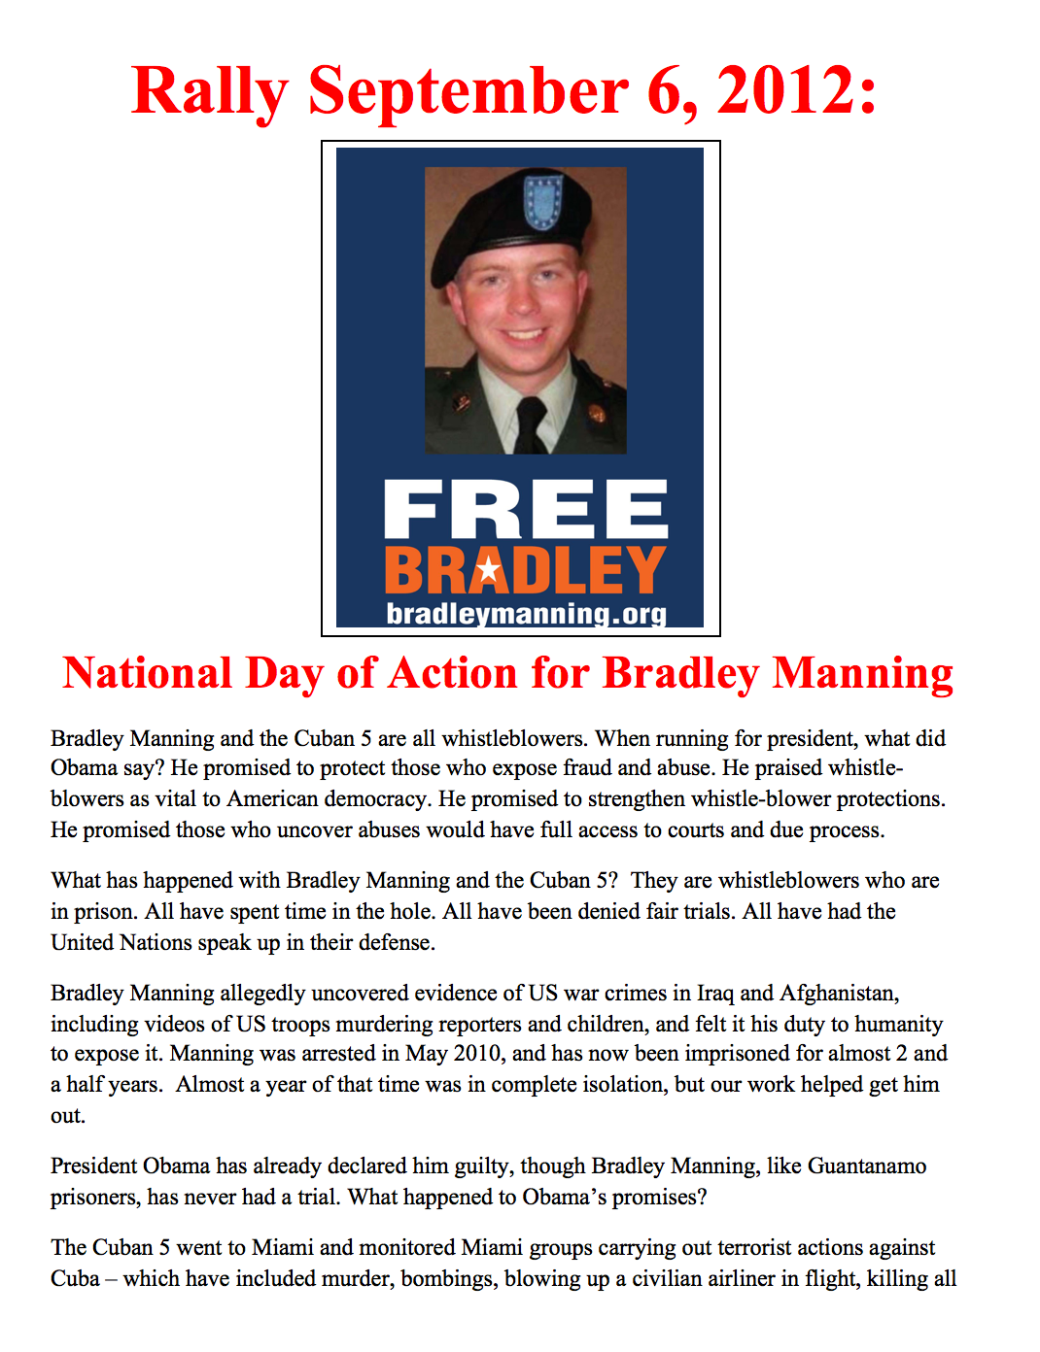 alba-september-2012-bradley-manning-and-the-cuban-5-are-all-whistleblowers-part-1